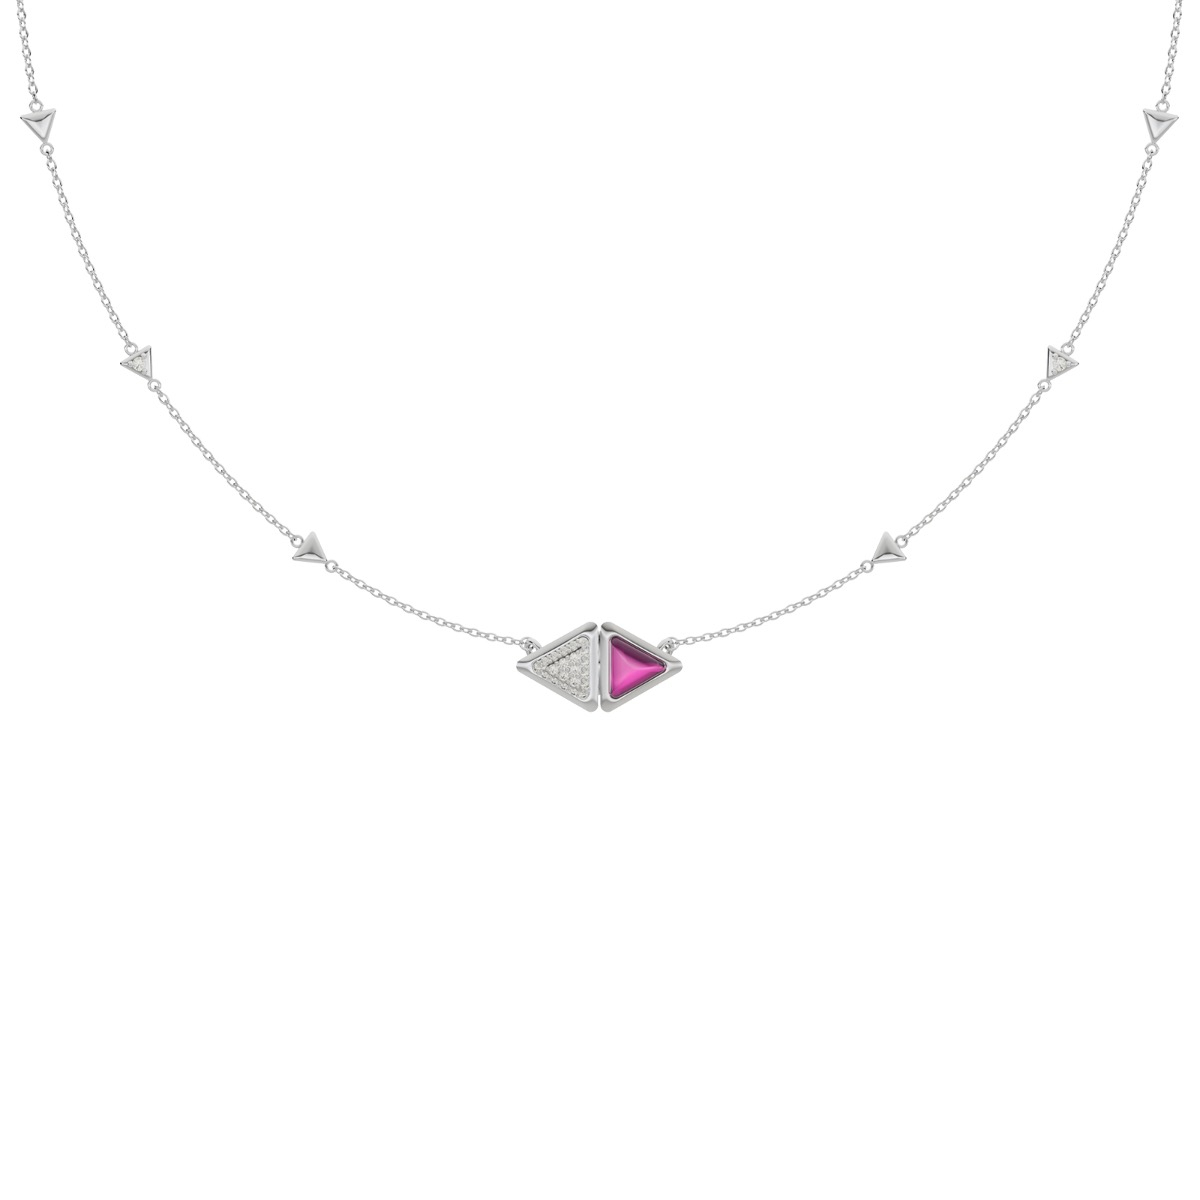 Necklace Mirror Exquisite White Gold Pink Garnet and Diamonds